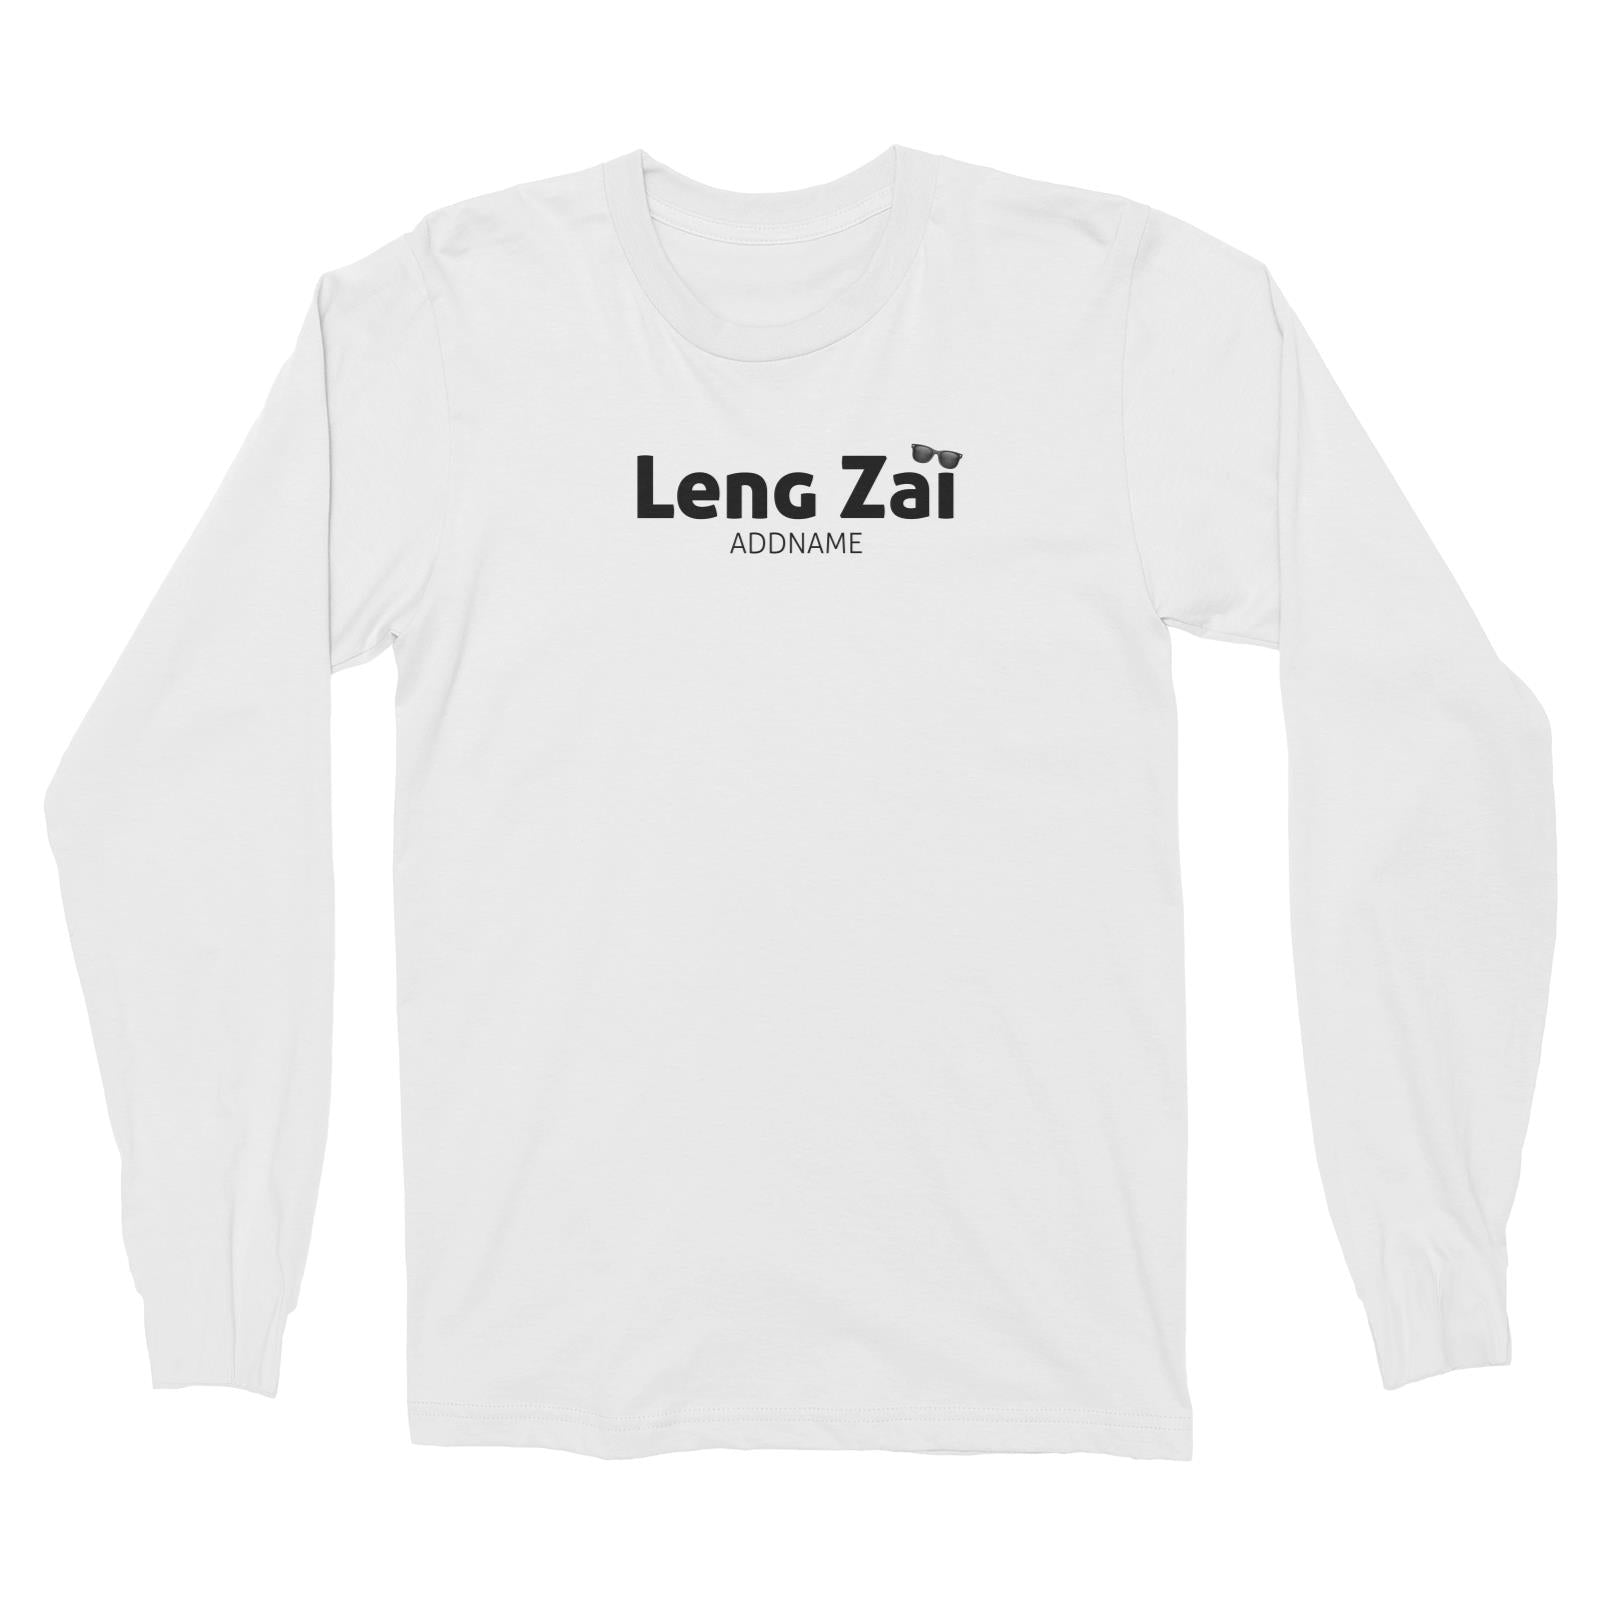 Leng Zai with Sunnies Long Sleeve Unisex T-Shirt